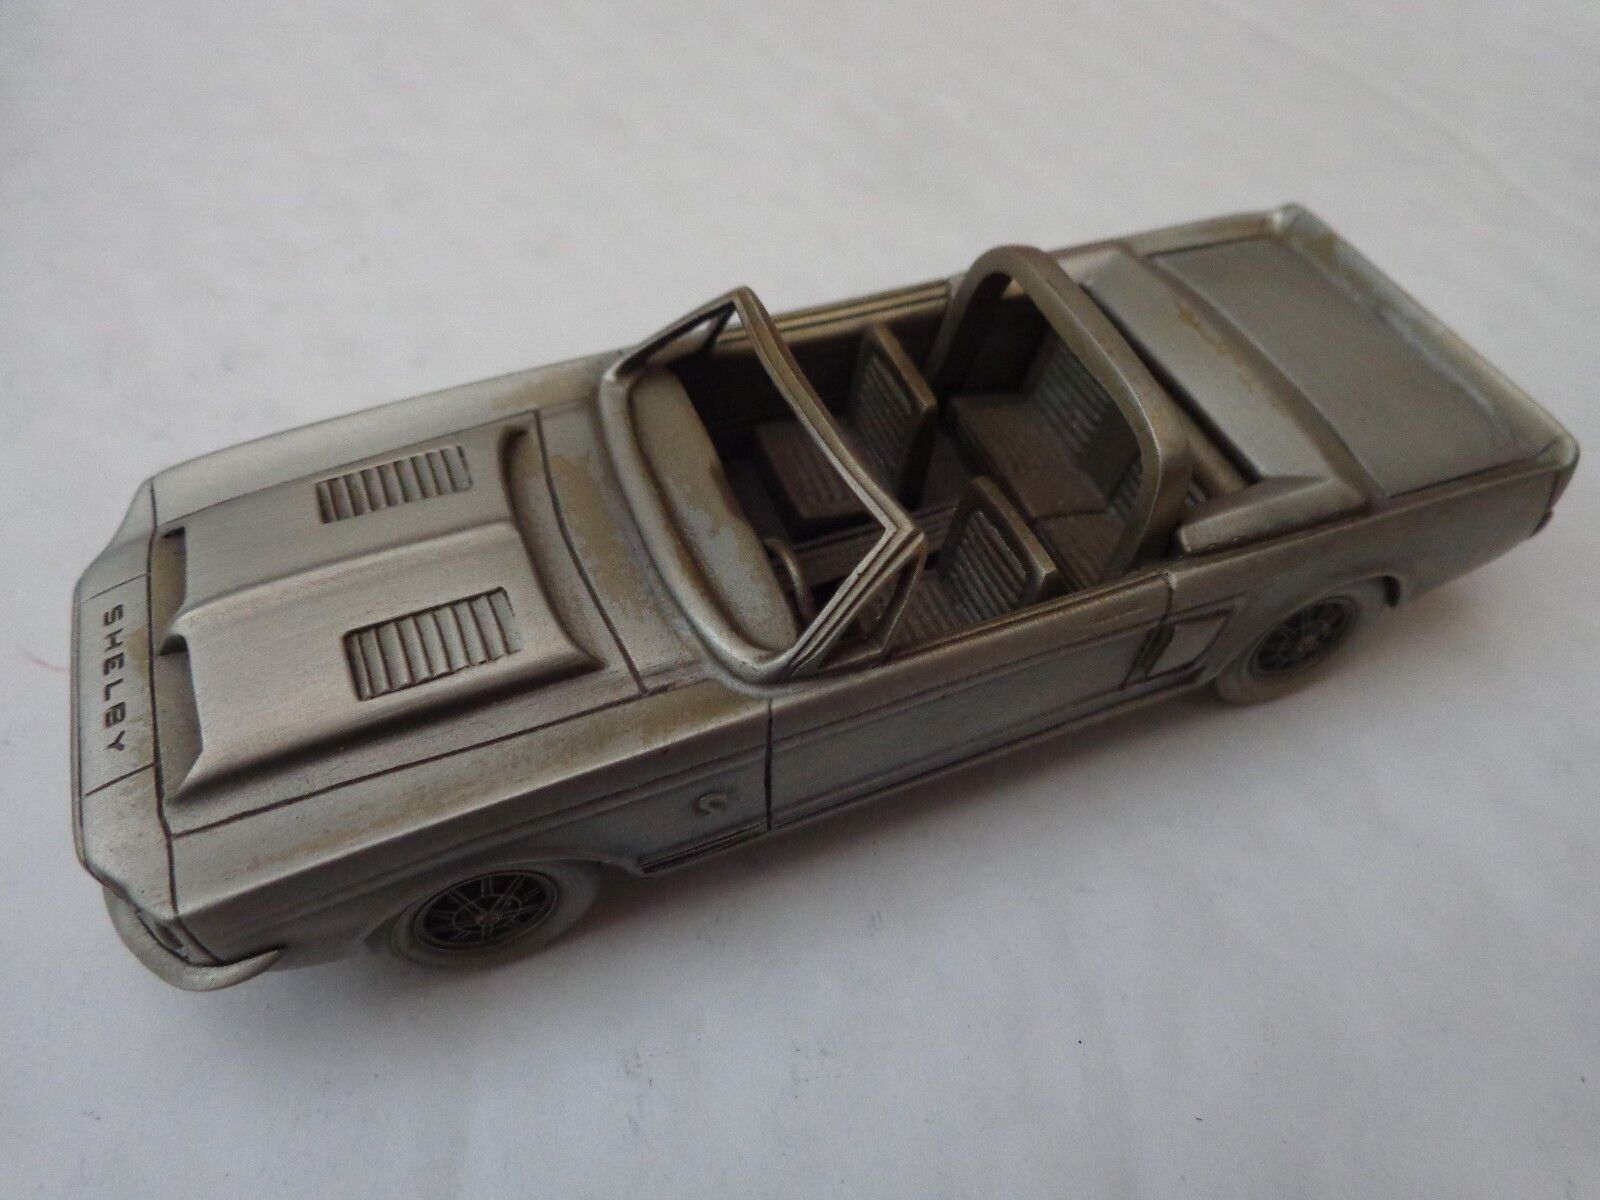 DANBURY MINT 1 43 CLASSIC 1968 SHELBY MUSTANG GT350 PEWTER MODEL CAR